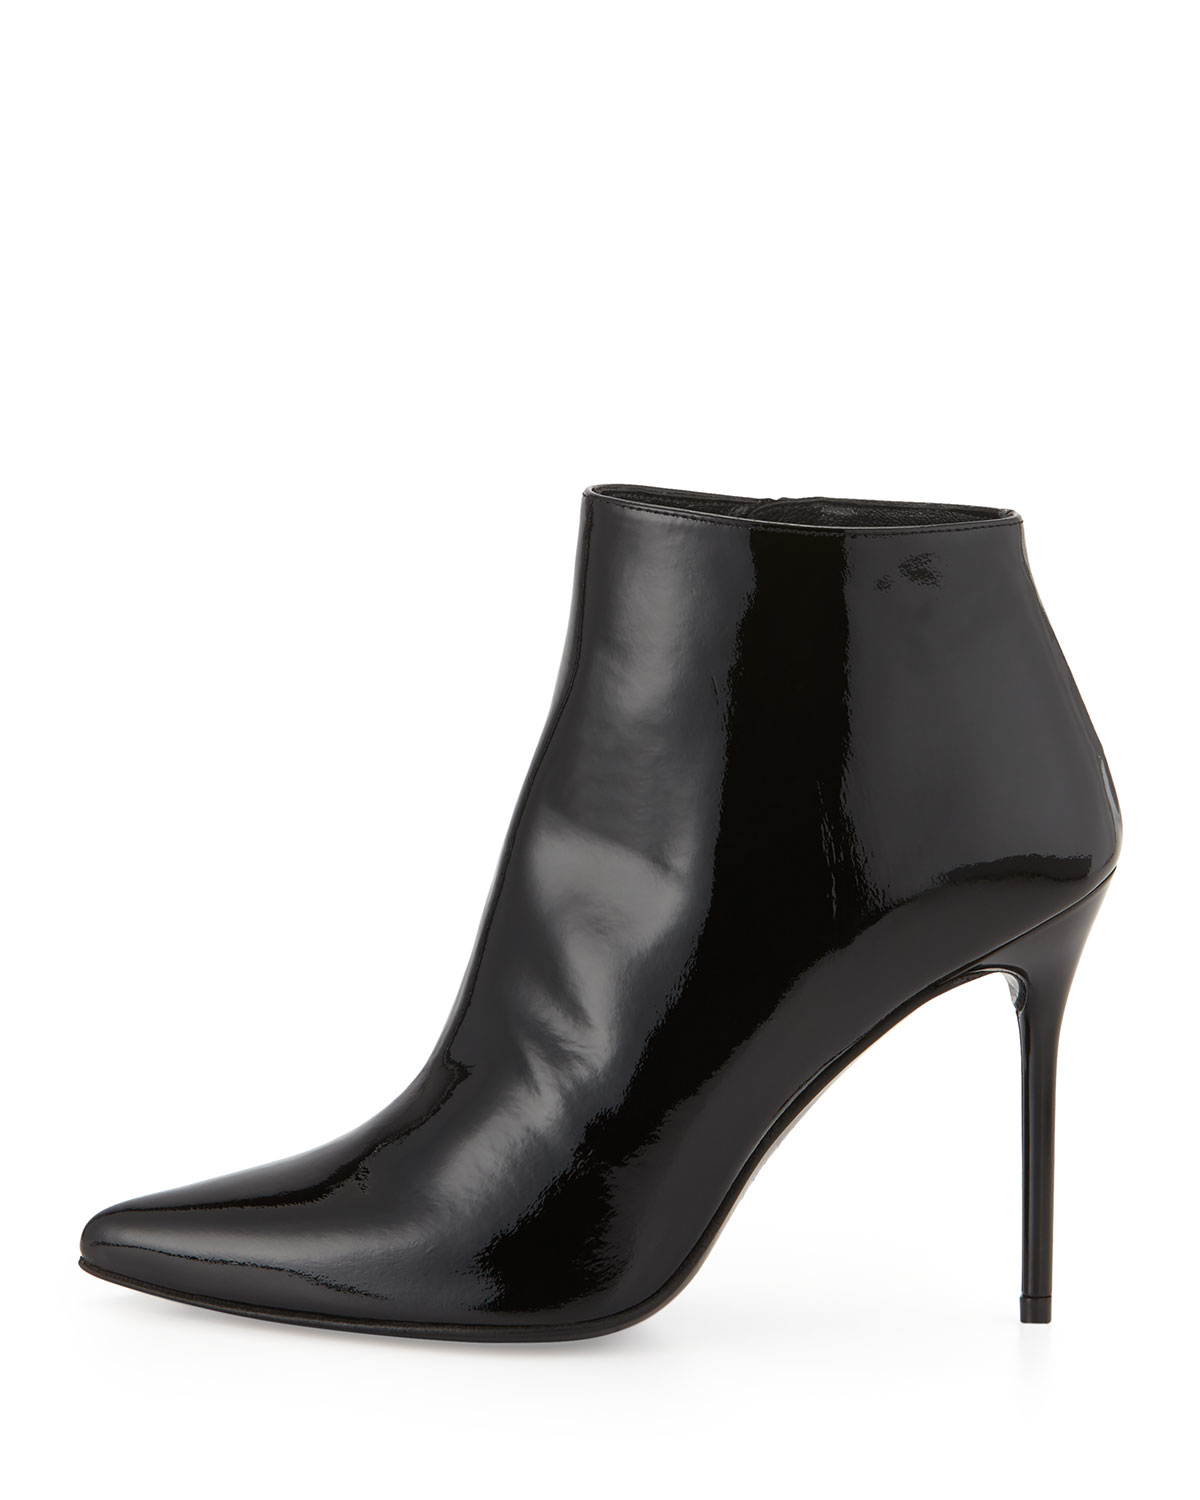 Stuart Weitzman Vienna Patent Leather Ankle Boot (Women's)